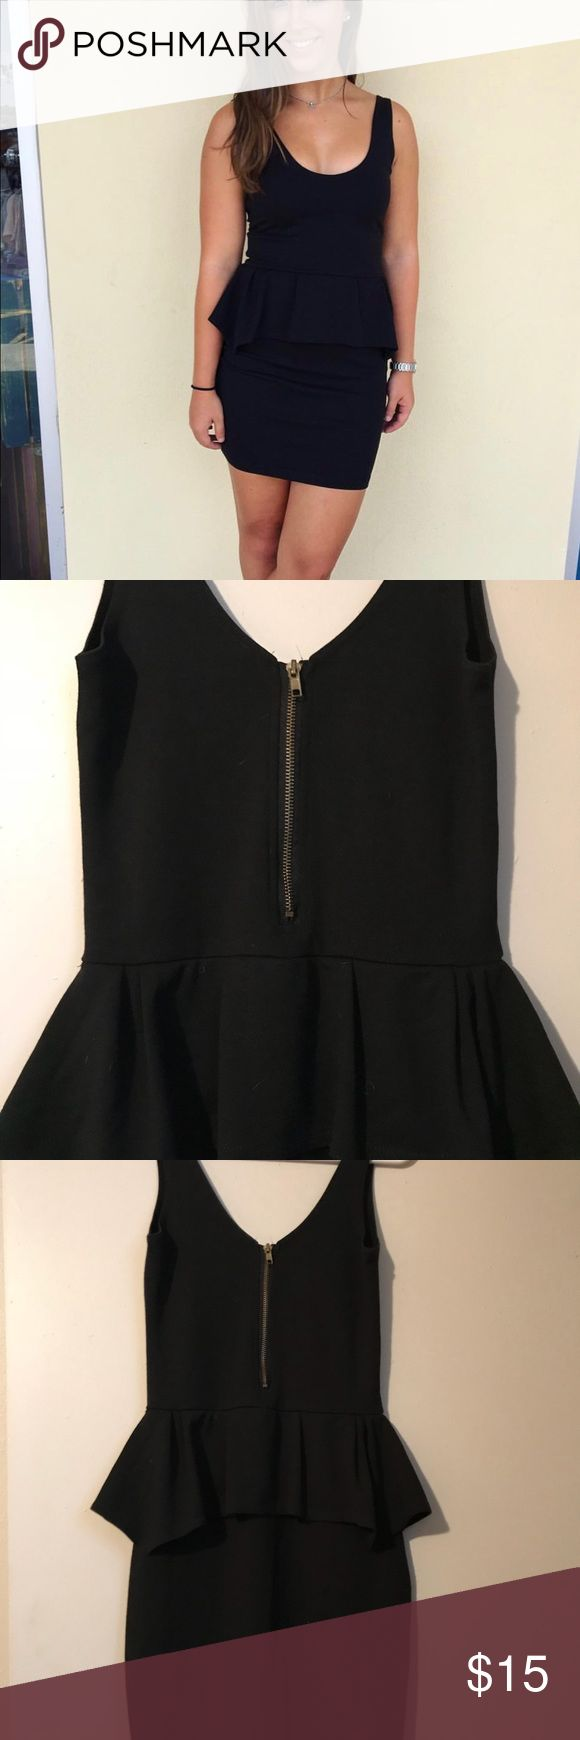 American eagle like Peplum dress size small Black peplum dress Size small For reference I'm 5'2 115lbs Dress is NOT American eagle but AE does indeed sell the same exact dress Dresses